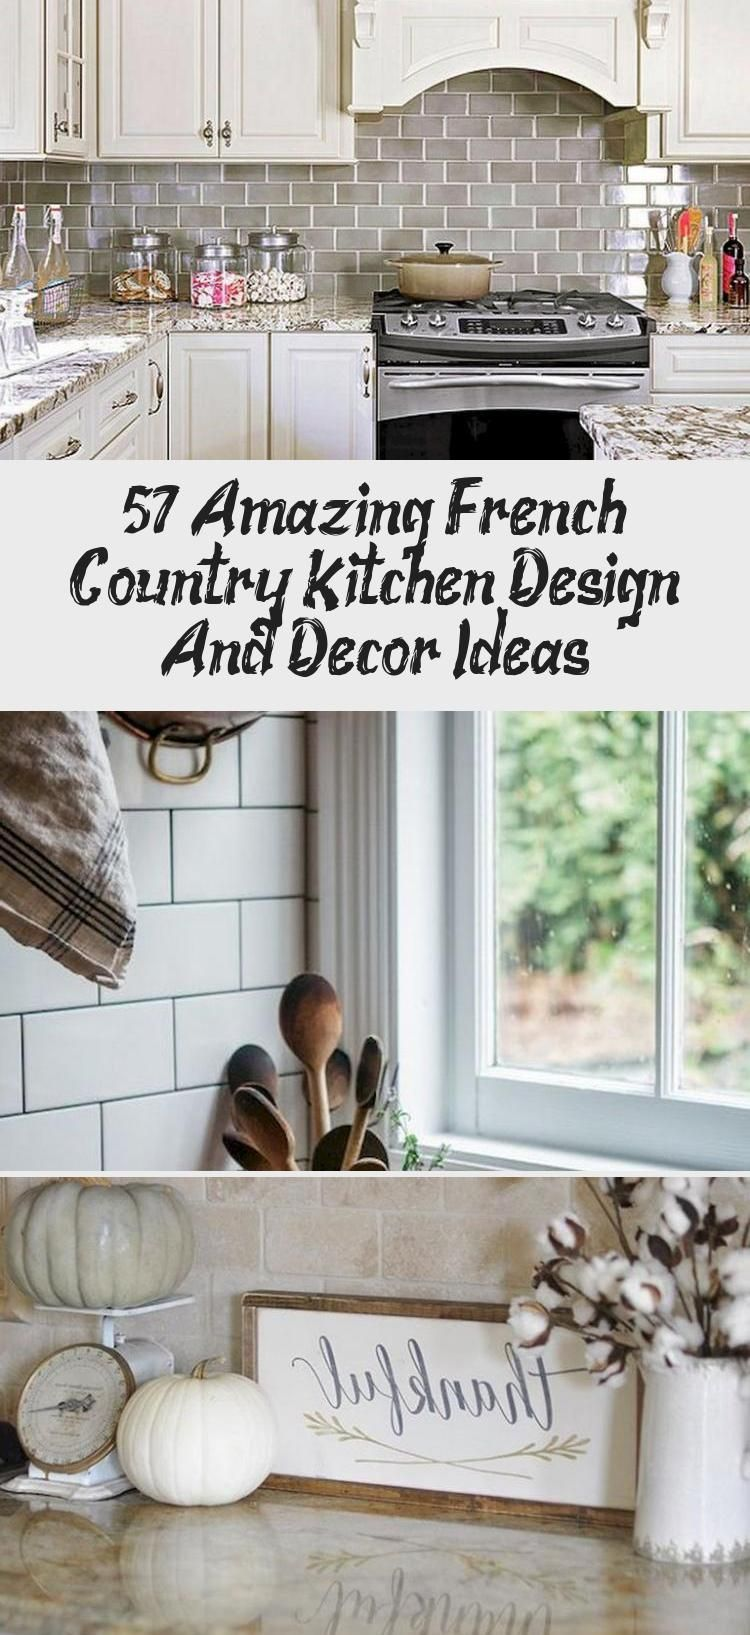 57+ Amazing French Country Kitchen Design And Decor Ideas - Kitchen Decor 57+ Amazing French Country Kitchen Des...#amazing #country #decor #design #french #ideas #kitchen